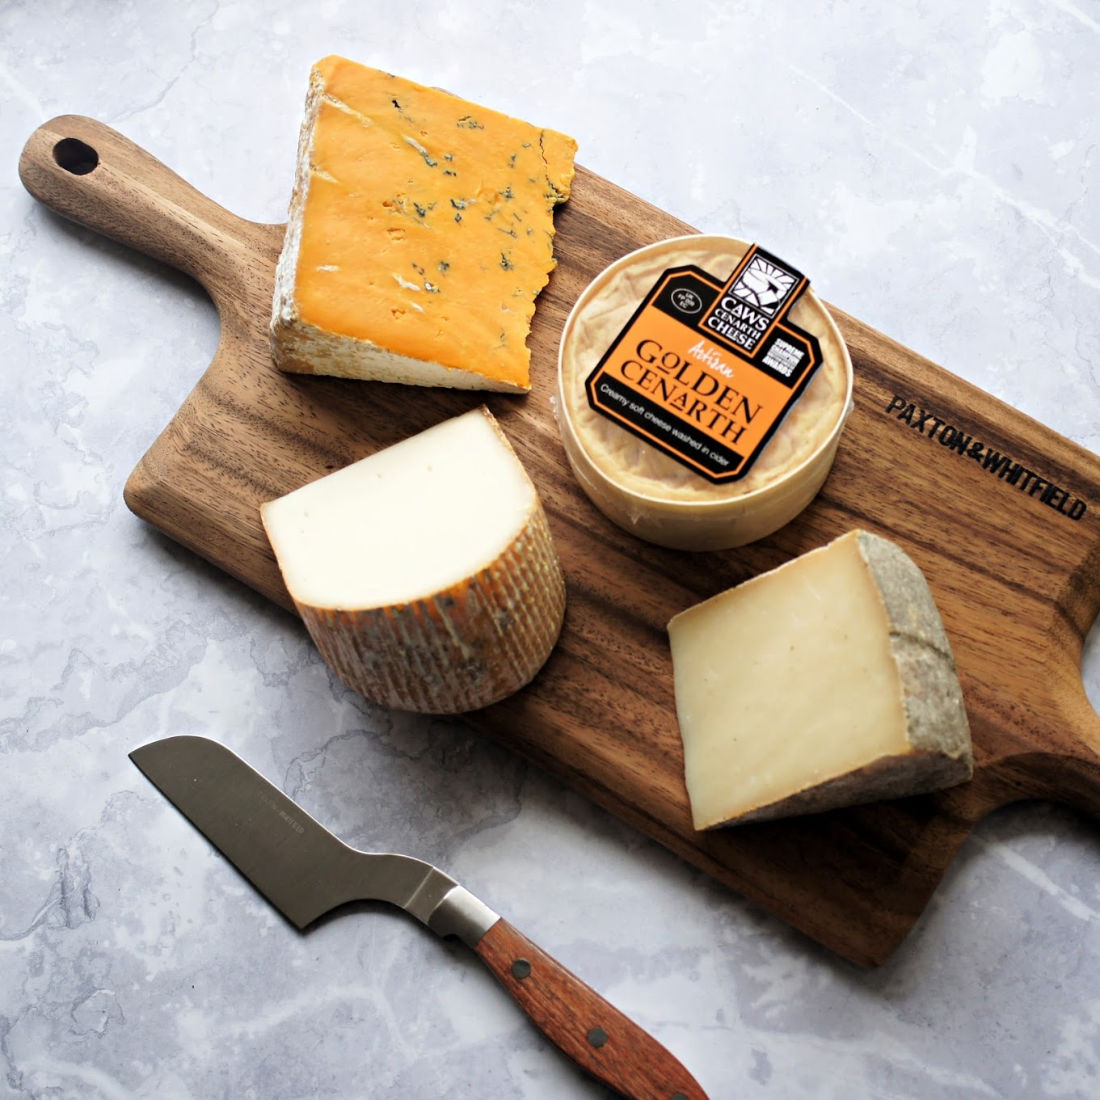 1018-Strictly-Vegetarian-Cheese-Board-Selection-Low-Res-Web-Main0AYtJl83iEVMq